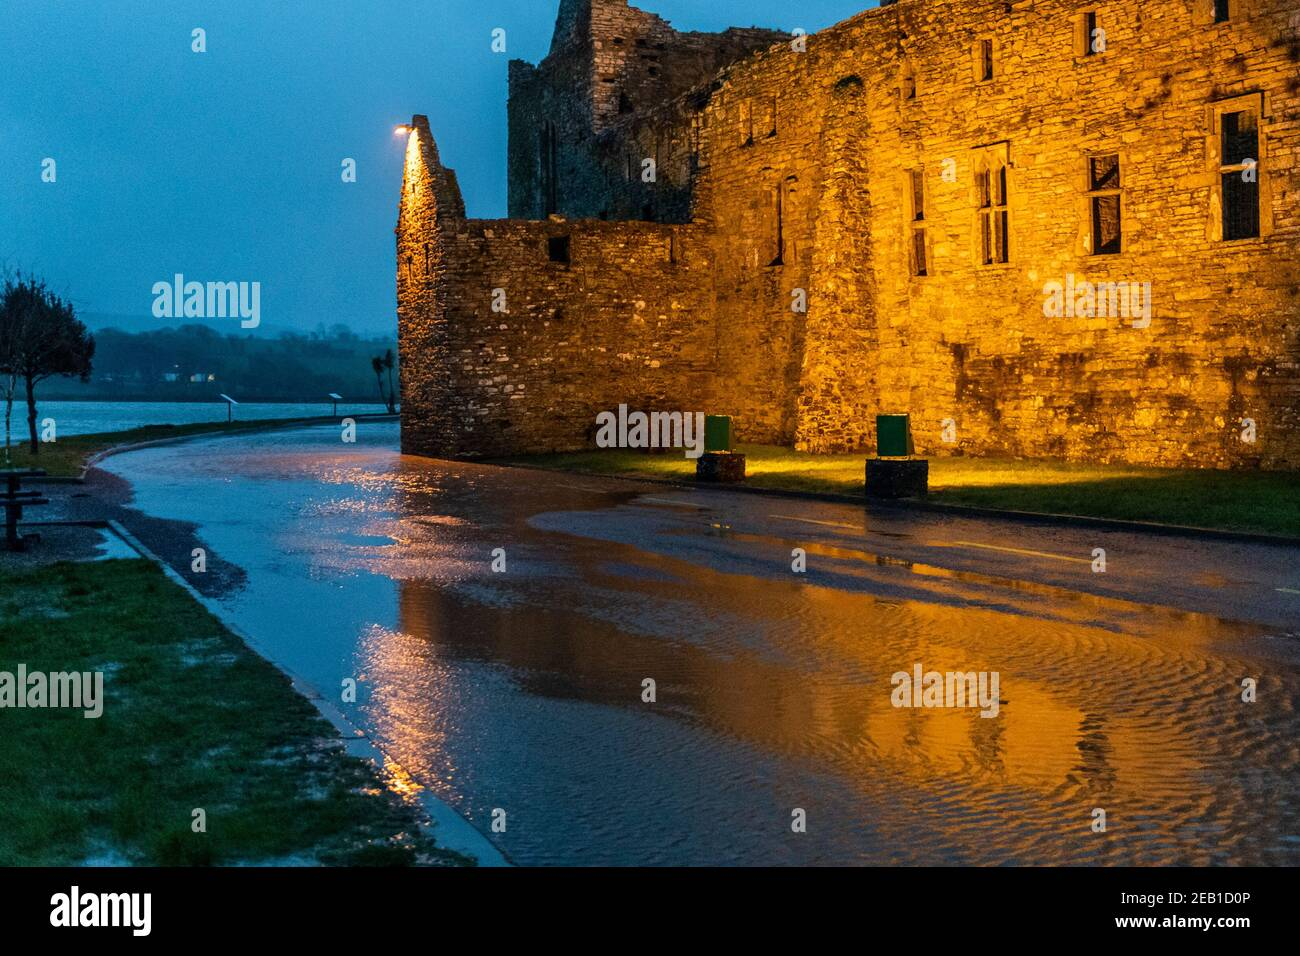 timoleague-west-cork-ireland-11th-feb-2021-after-a-day-of-torrential-rain-and-winter-showers-the-road-under-timoleague-abbey-flooded-at-high-tide-this-evening-credit-ag-newsalamy-live-news-2EB1D0P.jpg